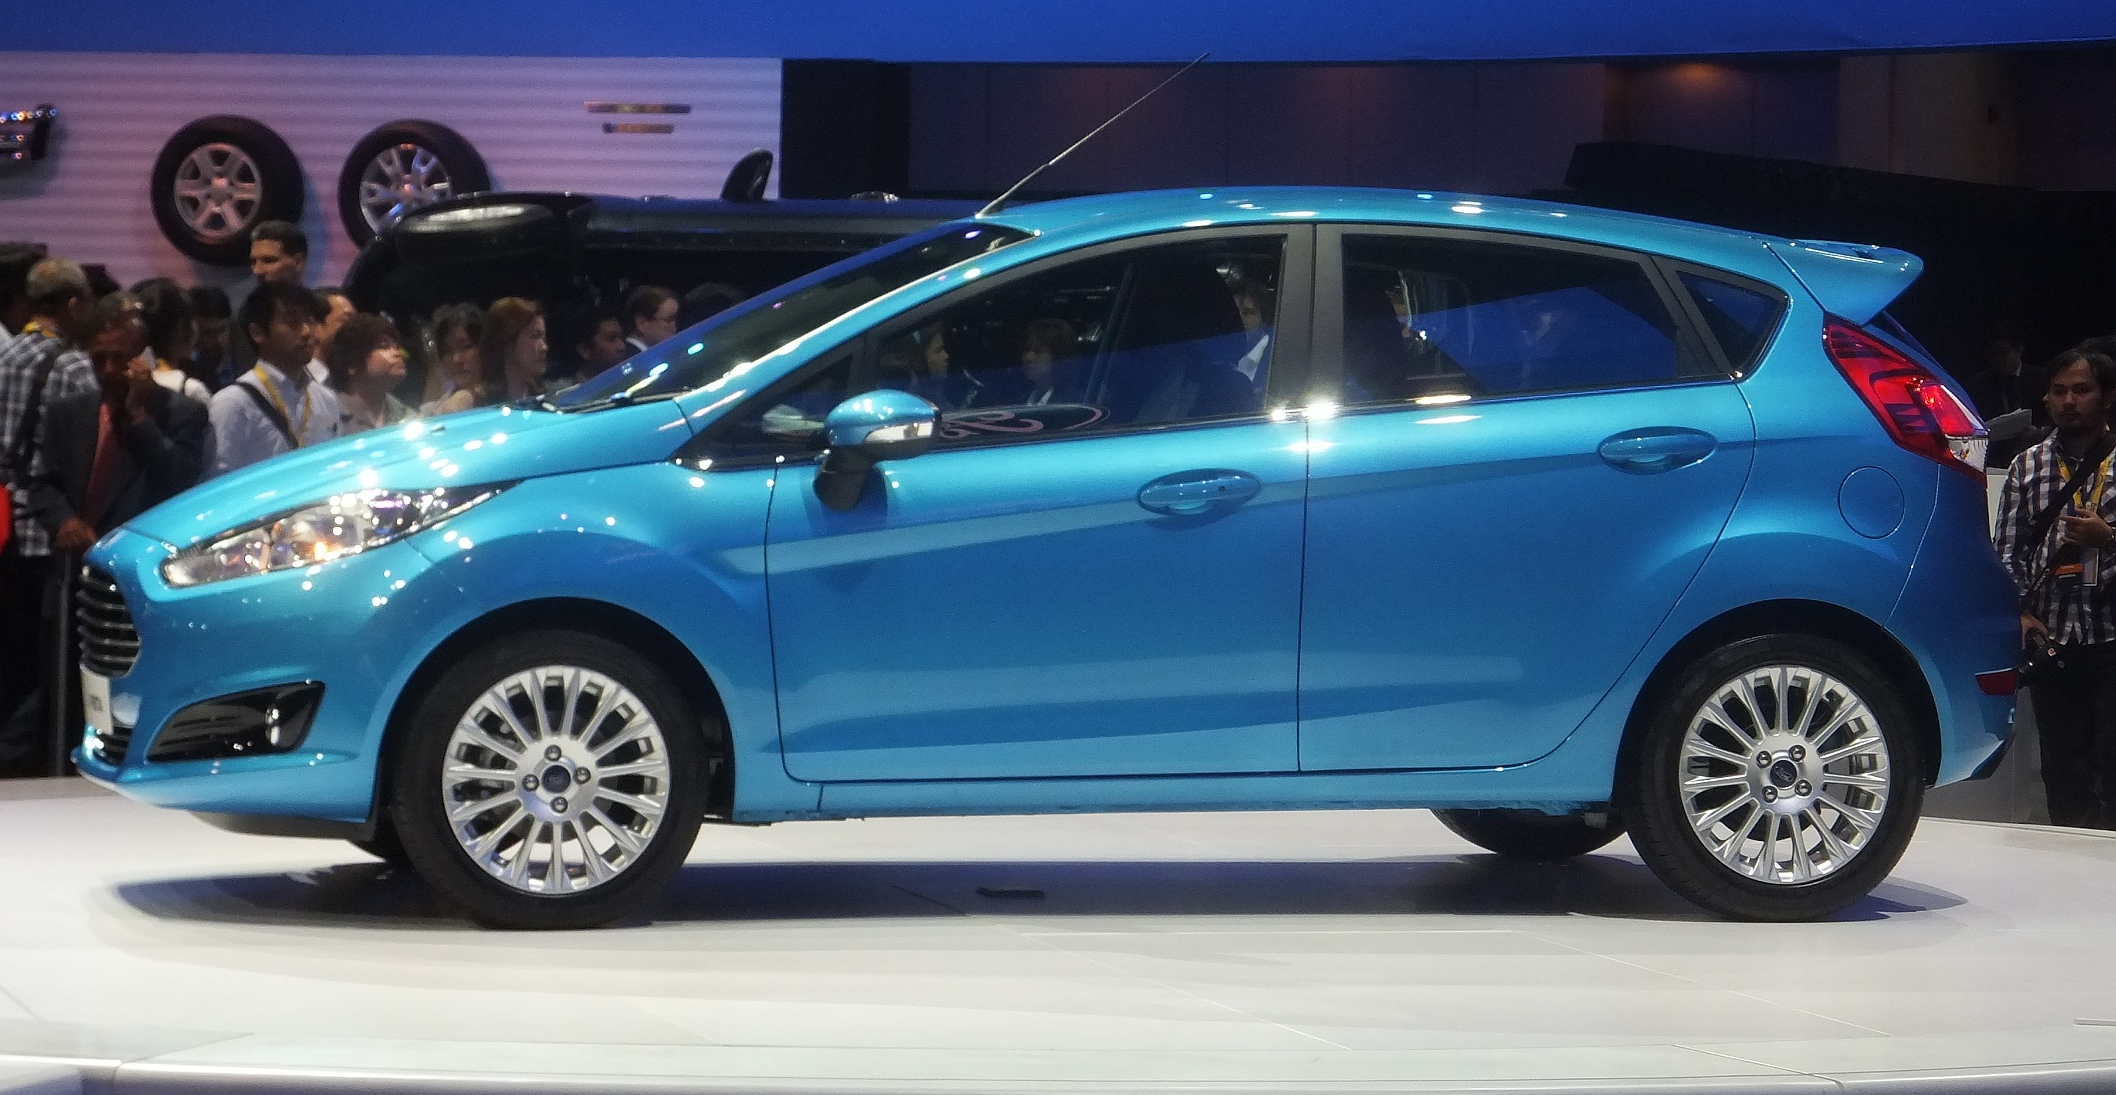 ~ Ford Fiesta 1.5 Ti-VCT facelift to be joined by 1.0 Ecoboost model